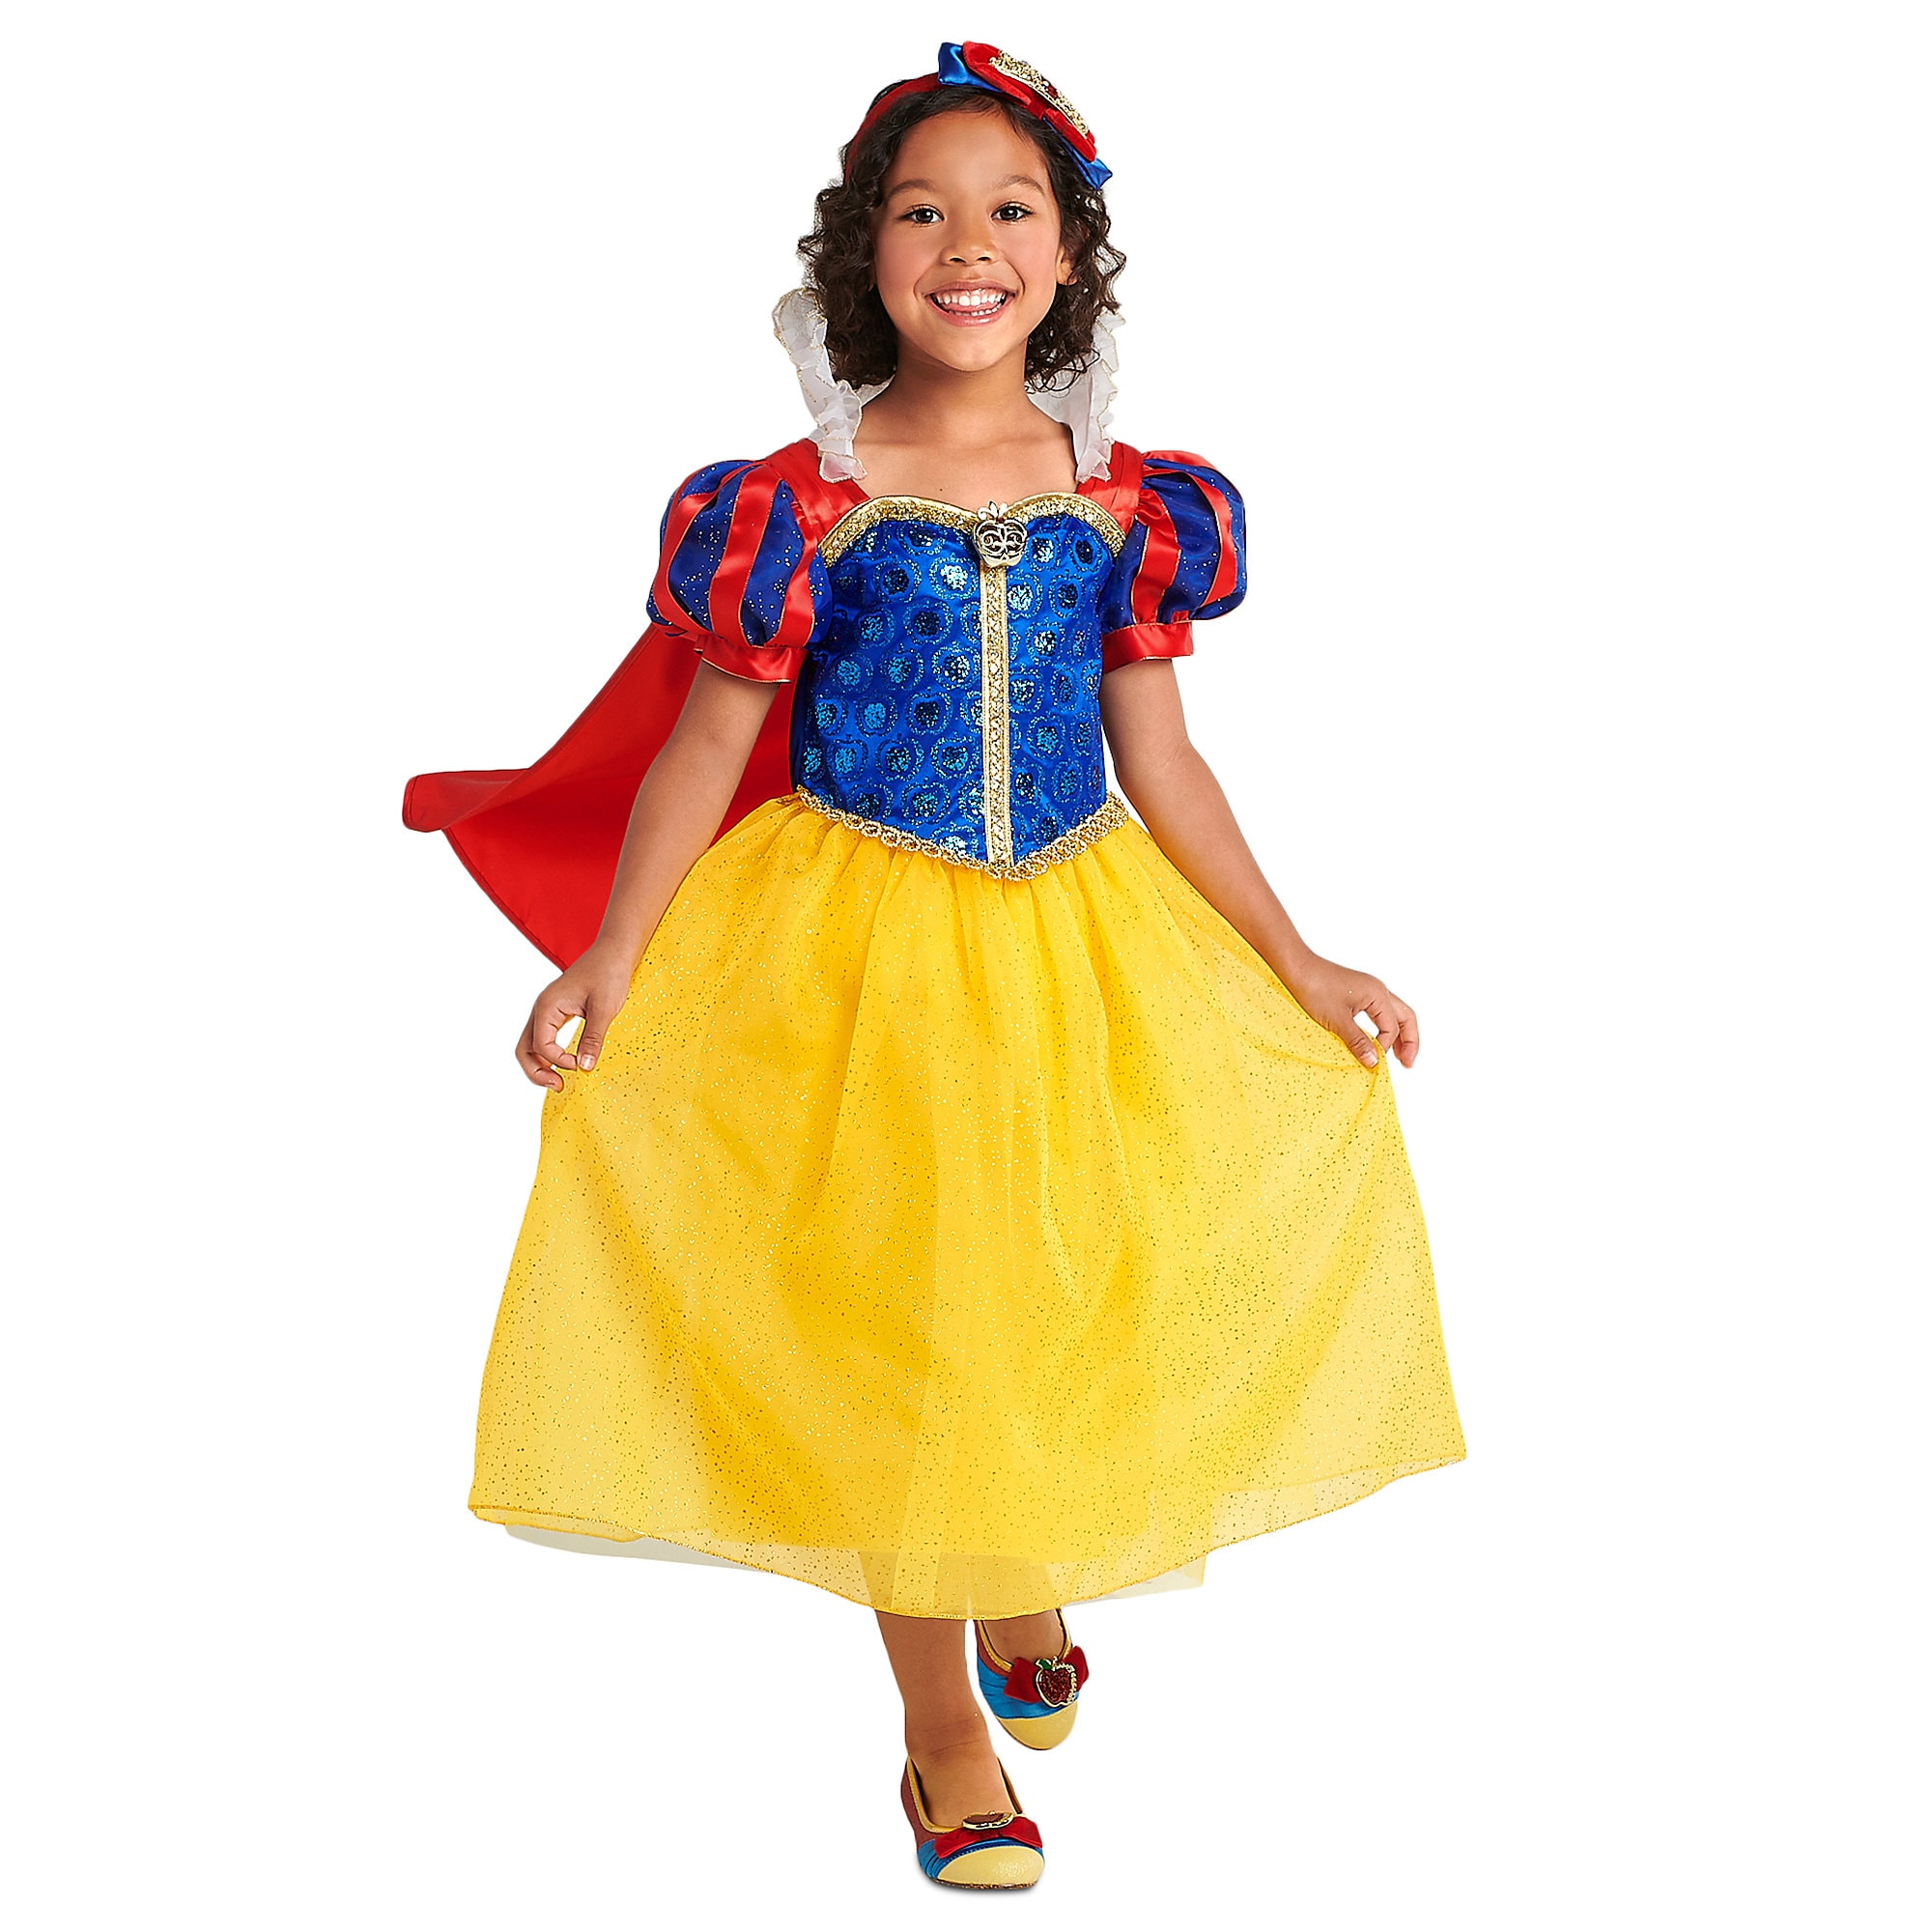 Captivating Snow White Costume Collection For Kids